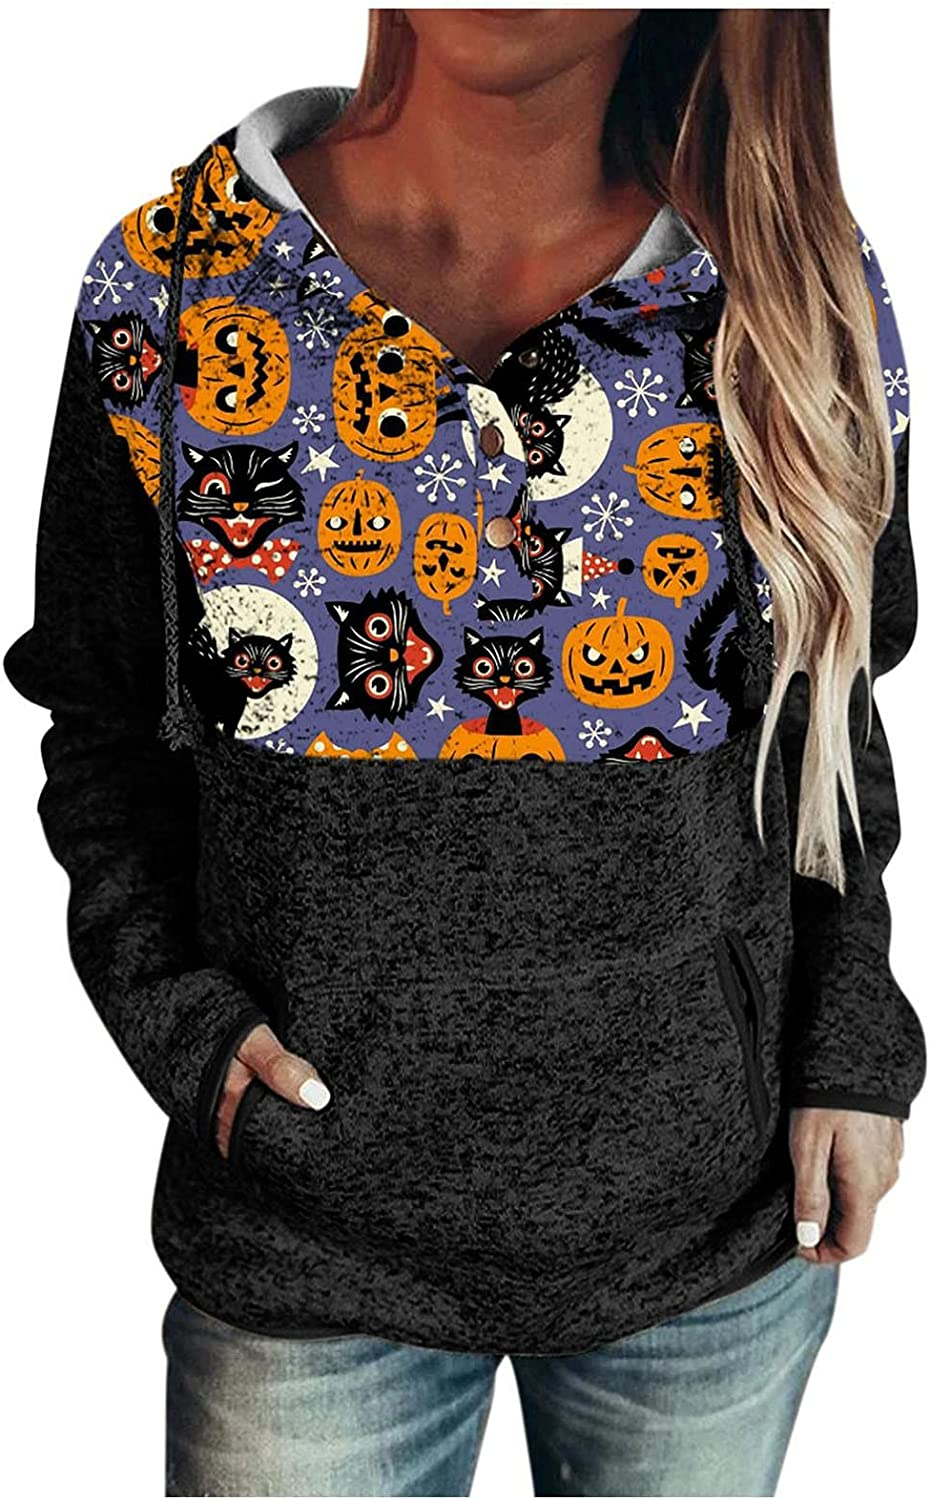 felwors Halloween Hoodies for Women, Womens Pullover Hoodies with Pockets Button Down Casual Long Sleeve Sweatshirts